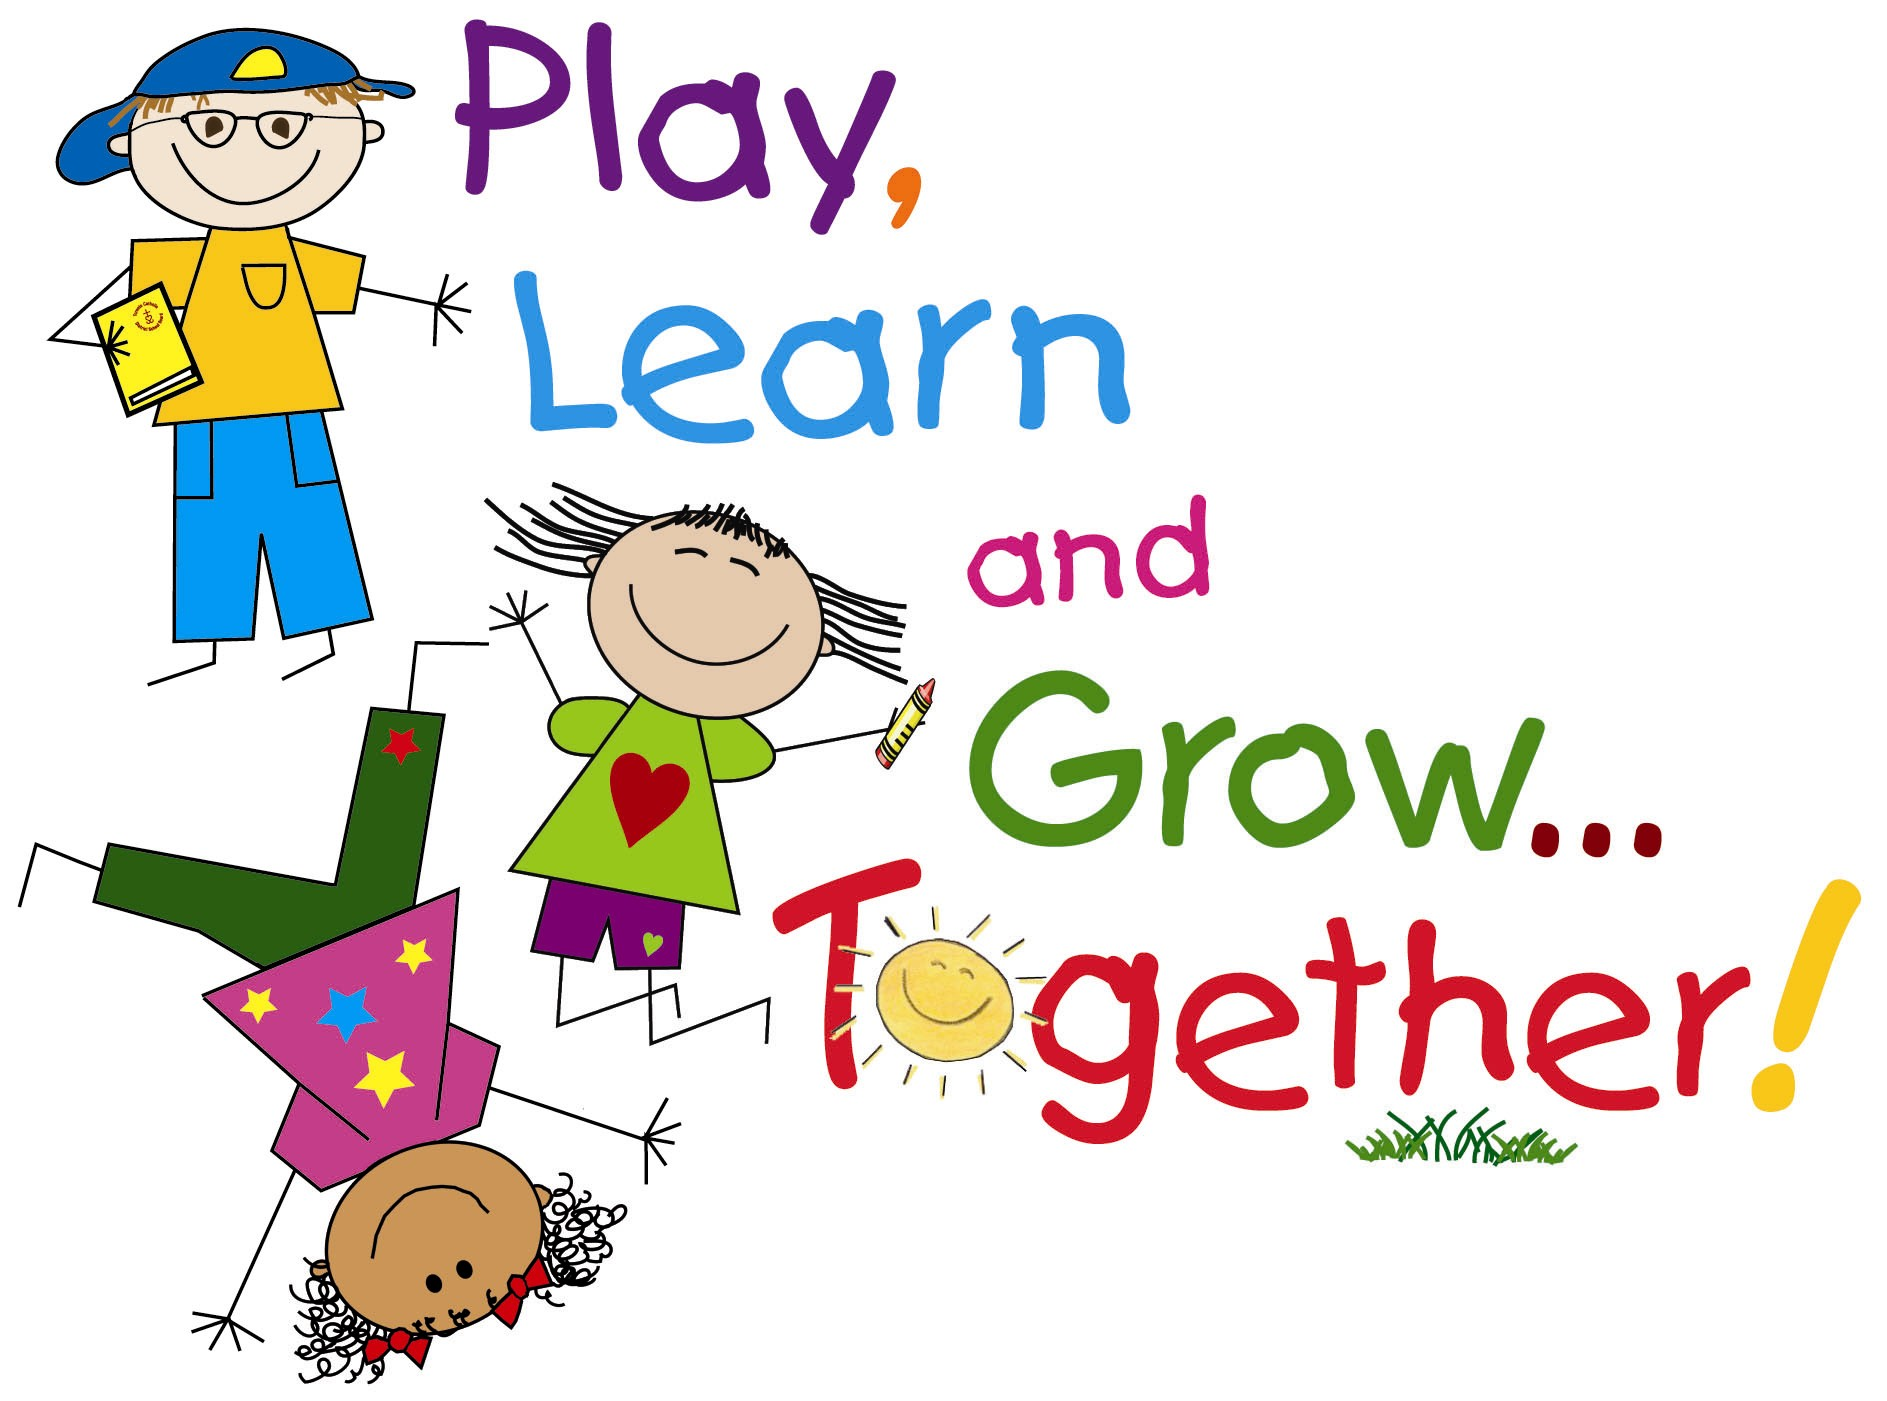 cartoon children playing with the word play learn & grow ... together